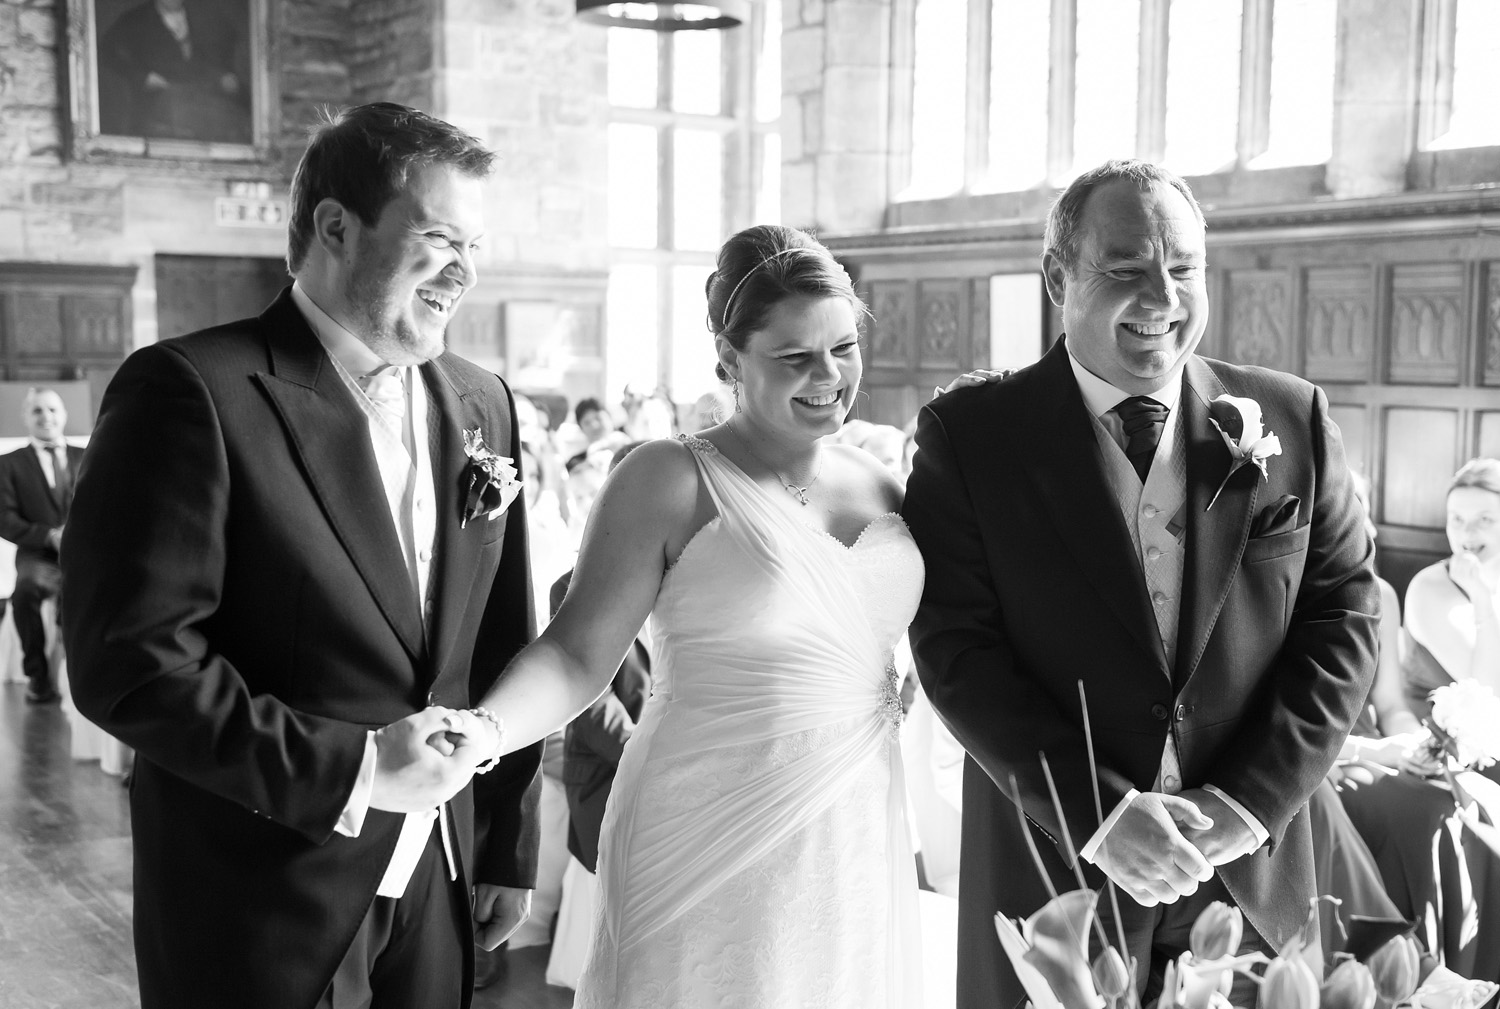 A beautiful wedding photograph at Hoghton Tower